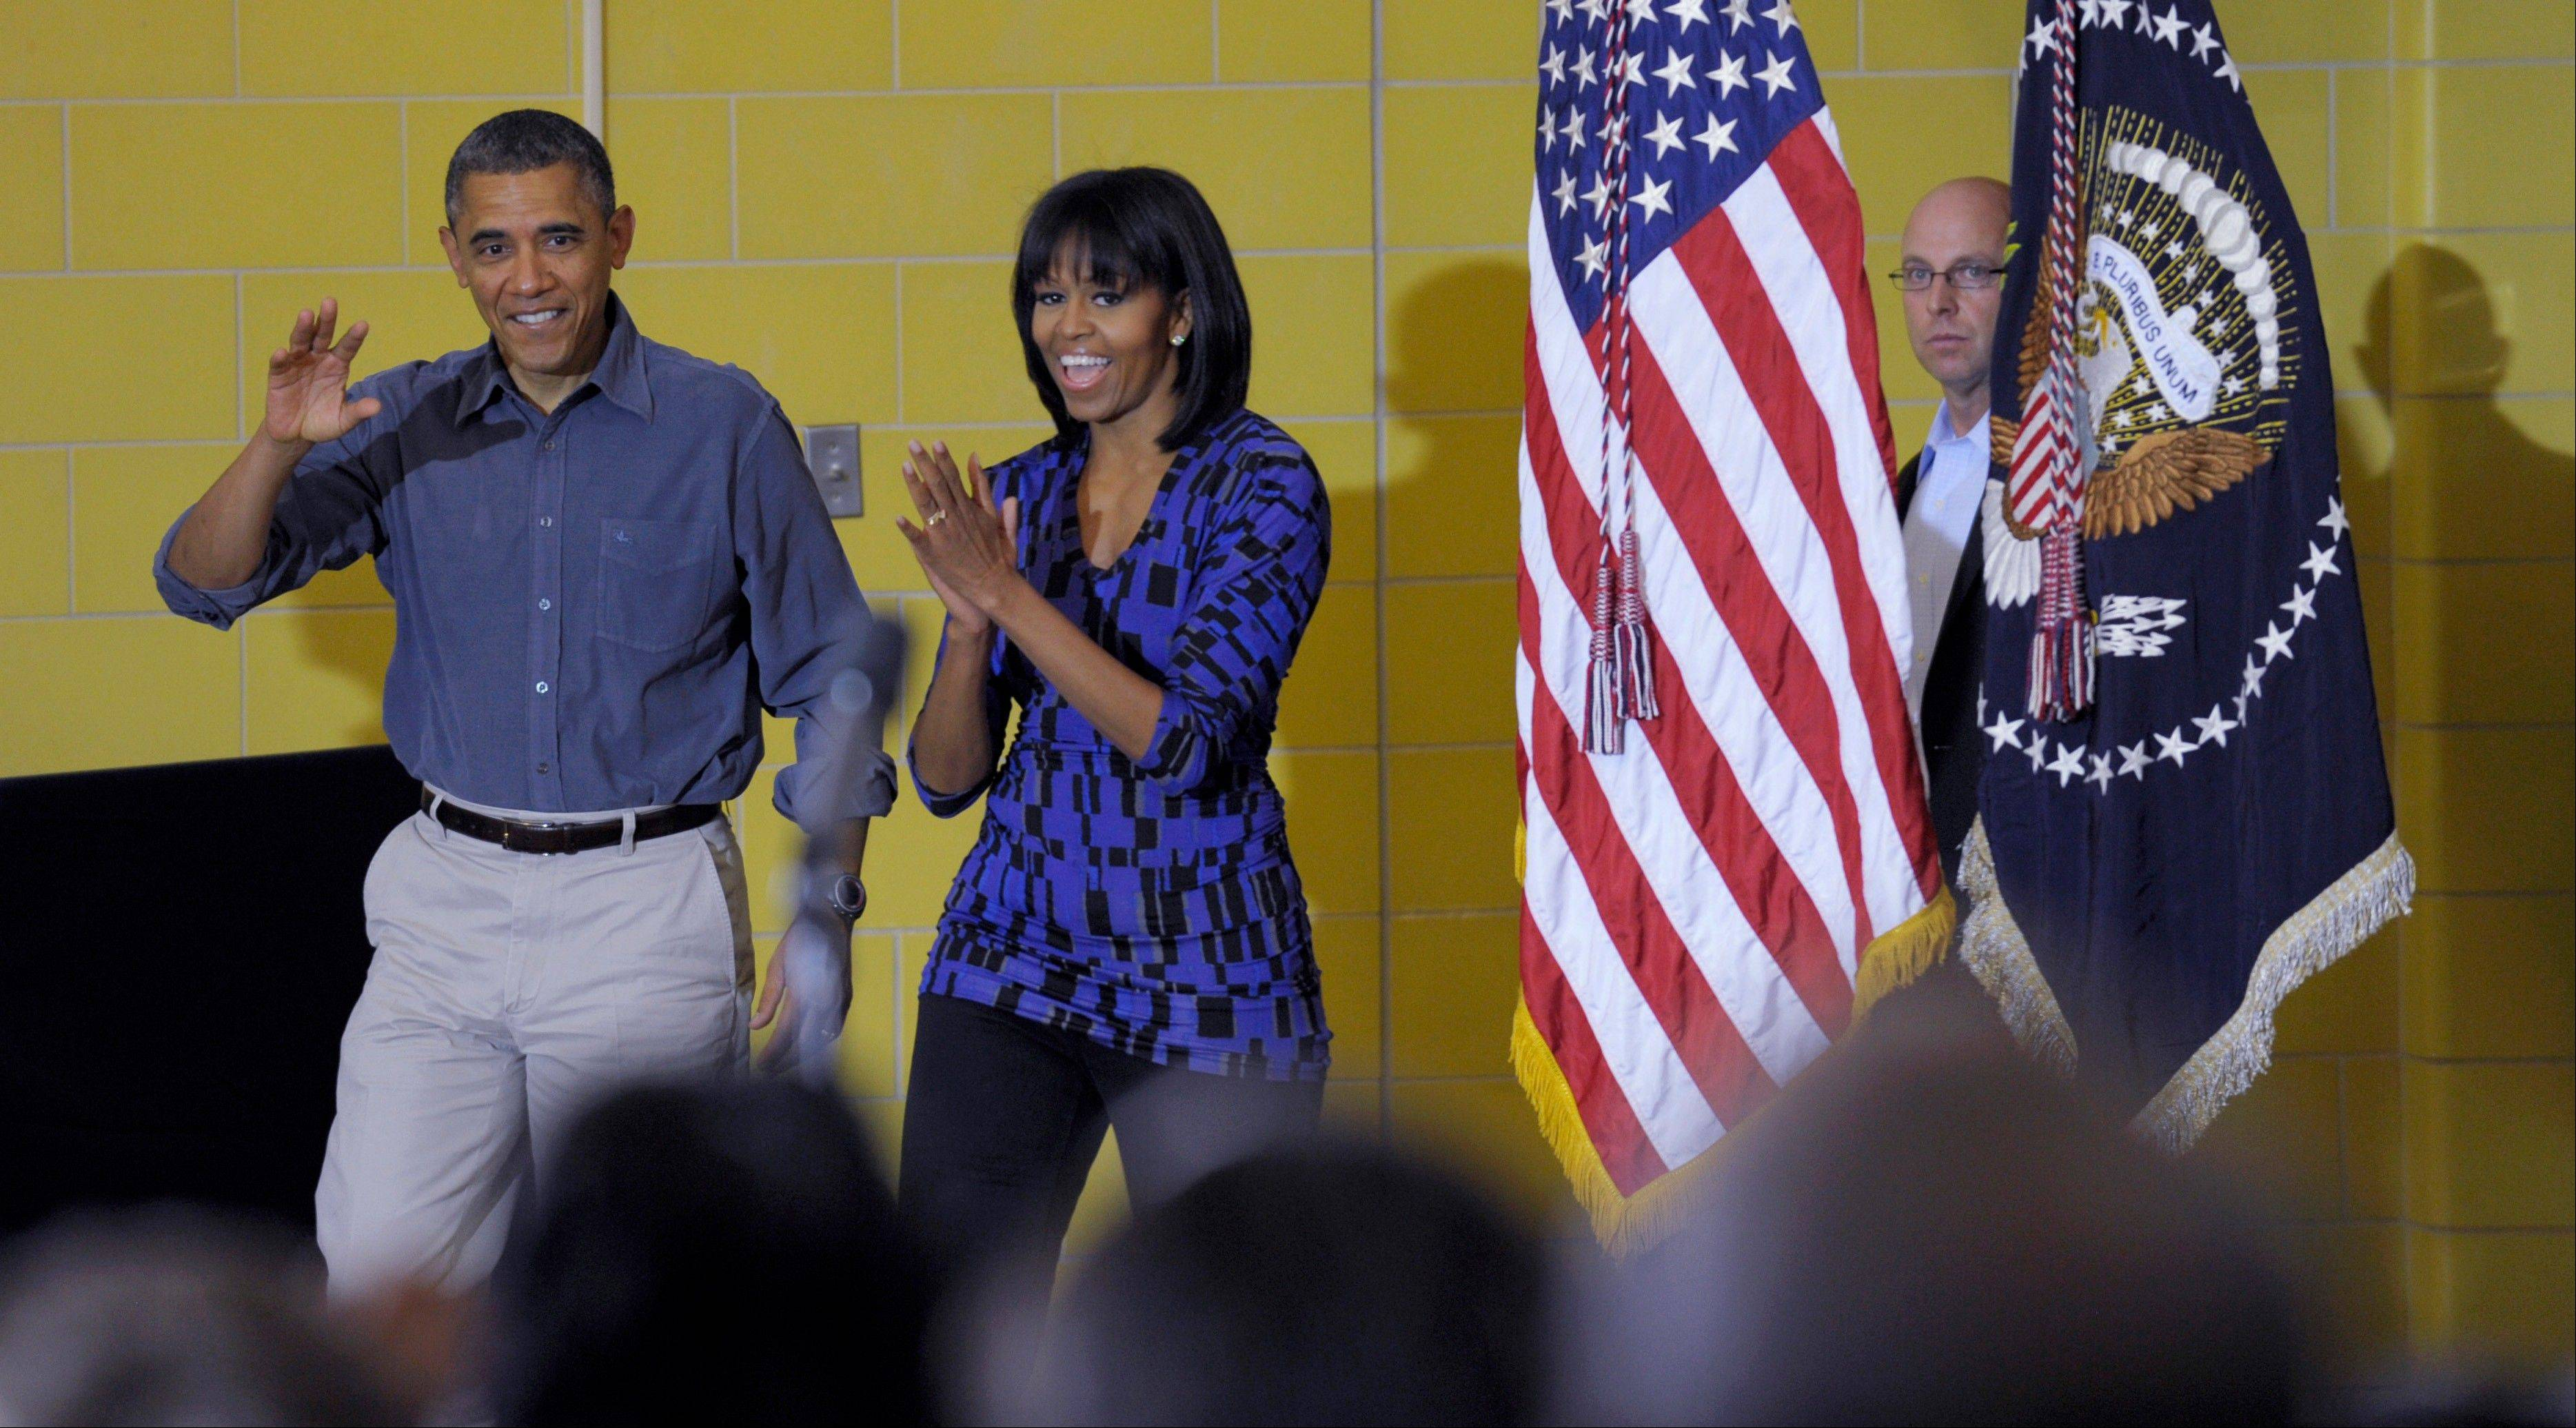 President Barack Obama and first lady Michelle Obama arrive prior to speaking at Burrville Elementary School in Washington, Saturday, Jan. 19, 2013, after the first family participated in a community service project for the National Day of Service as part of the 57th Presidential Inauguration.